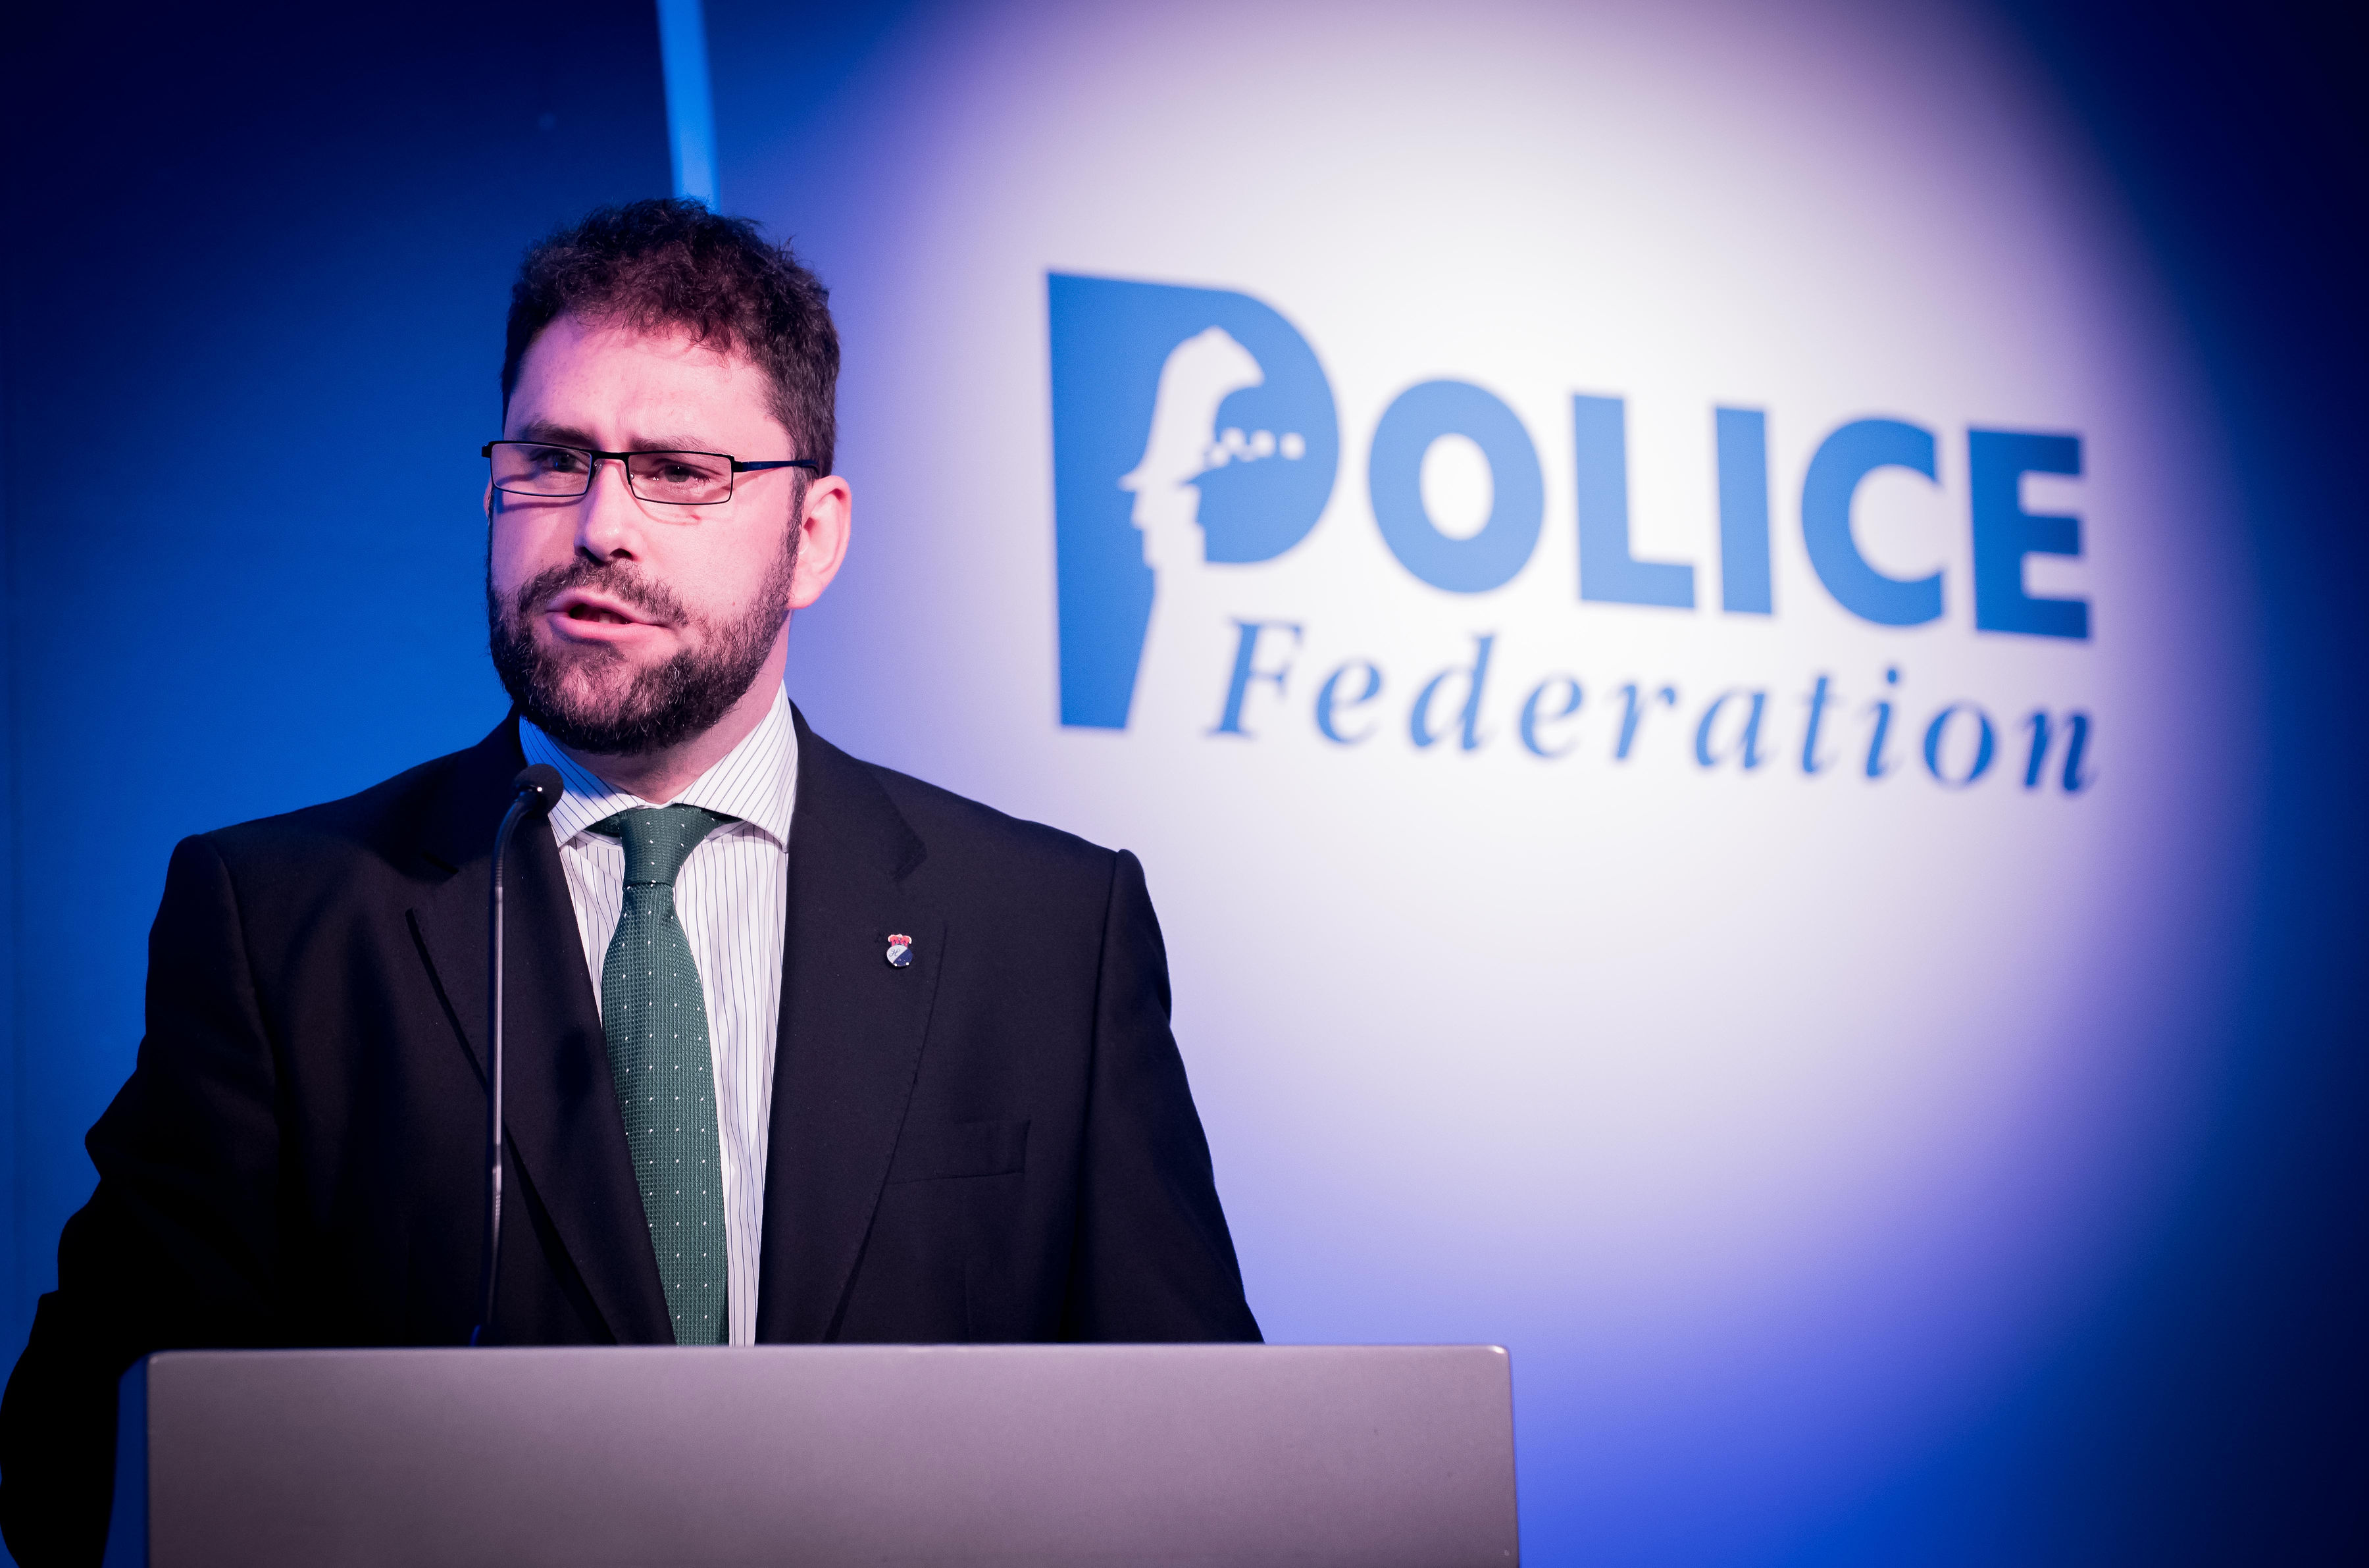 Chris Bentley, Chair, National Custody Forum